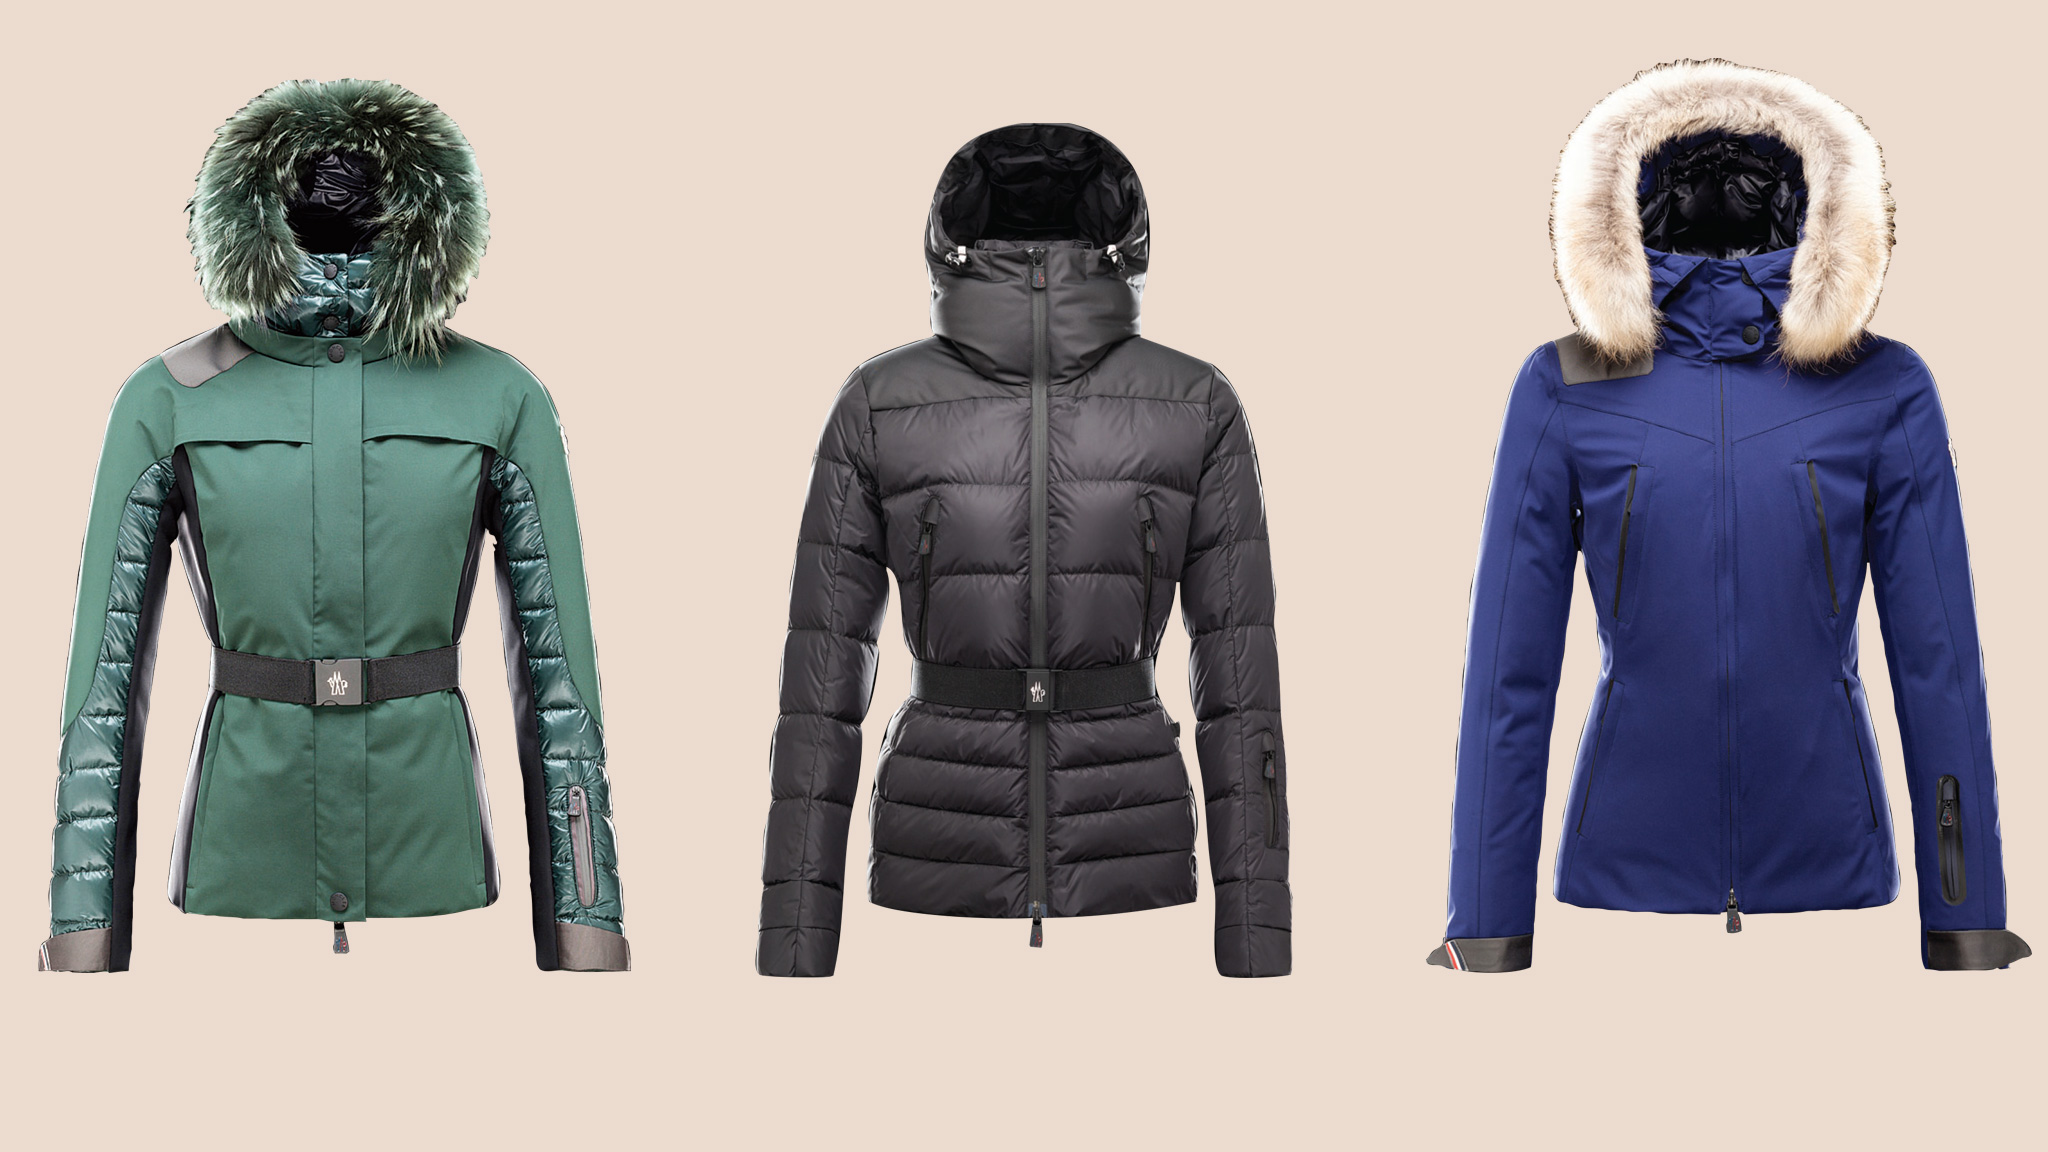 11dbc1170 Moncler skiwear is put through its paces | Financial Times